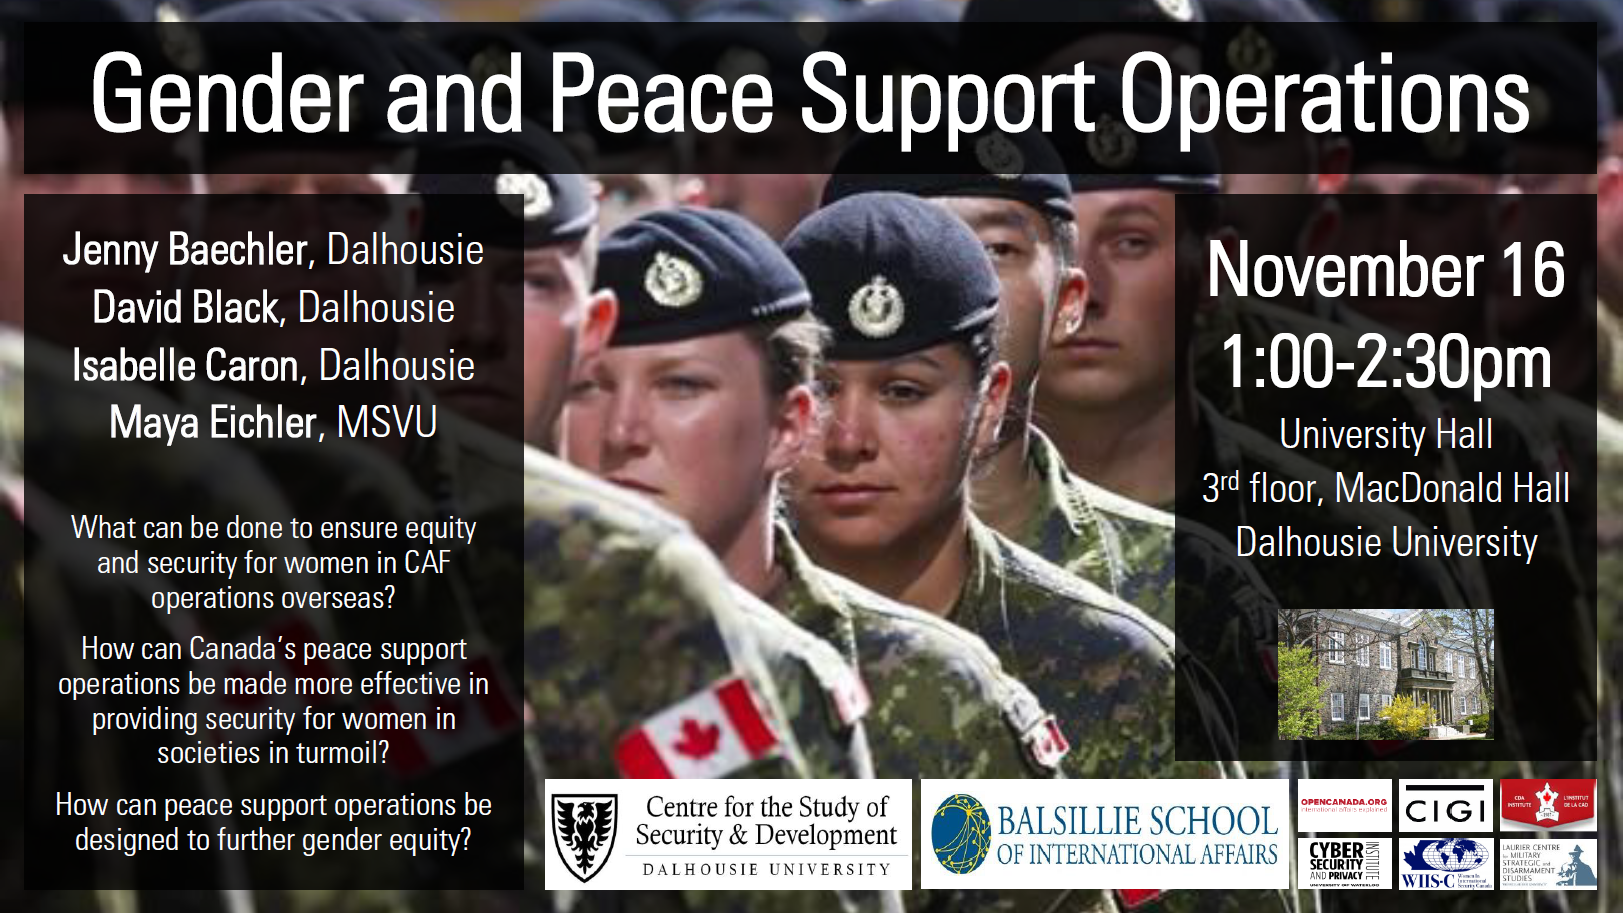 Gender and Peace Support Operations_Nov16